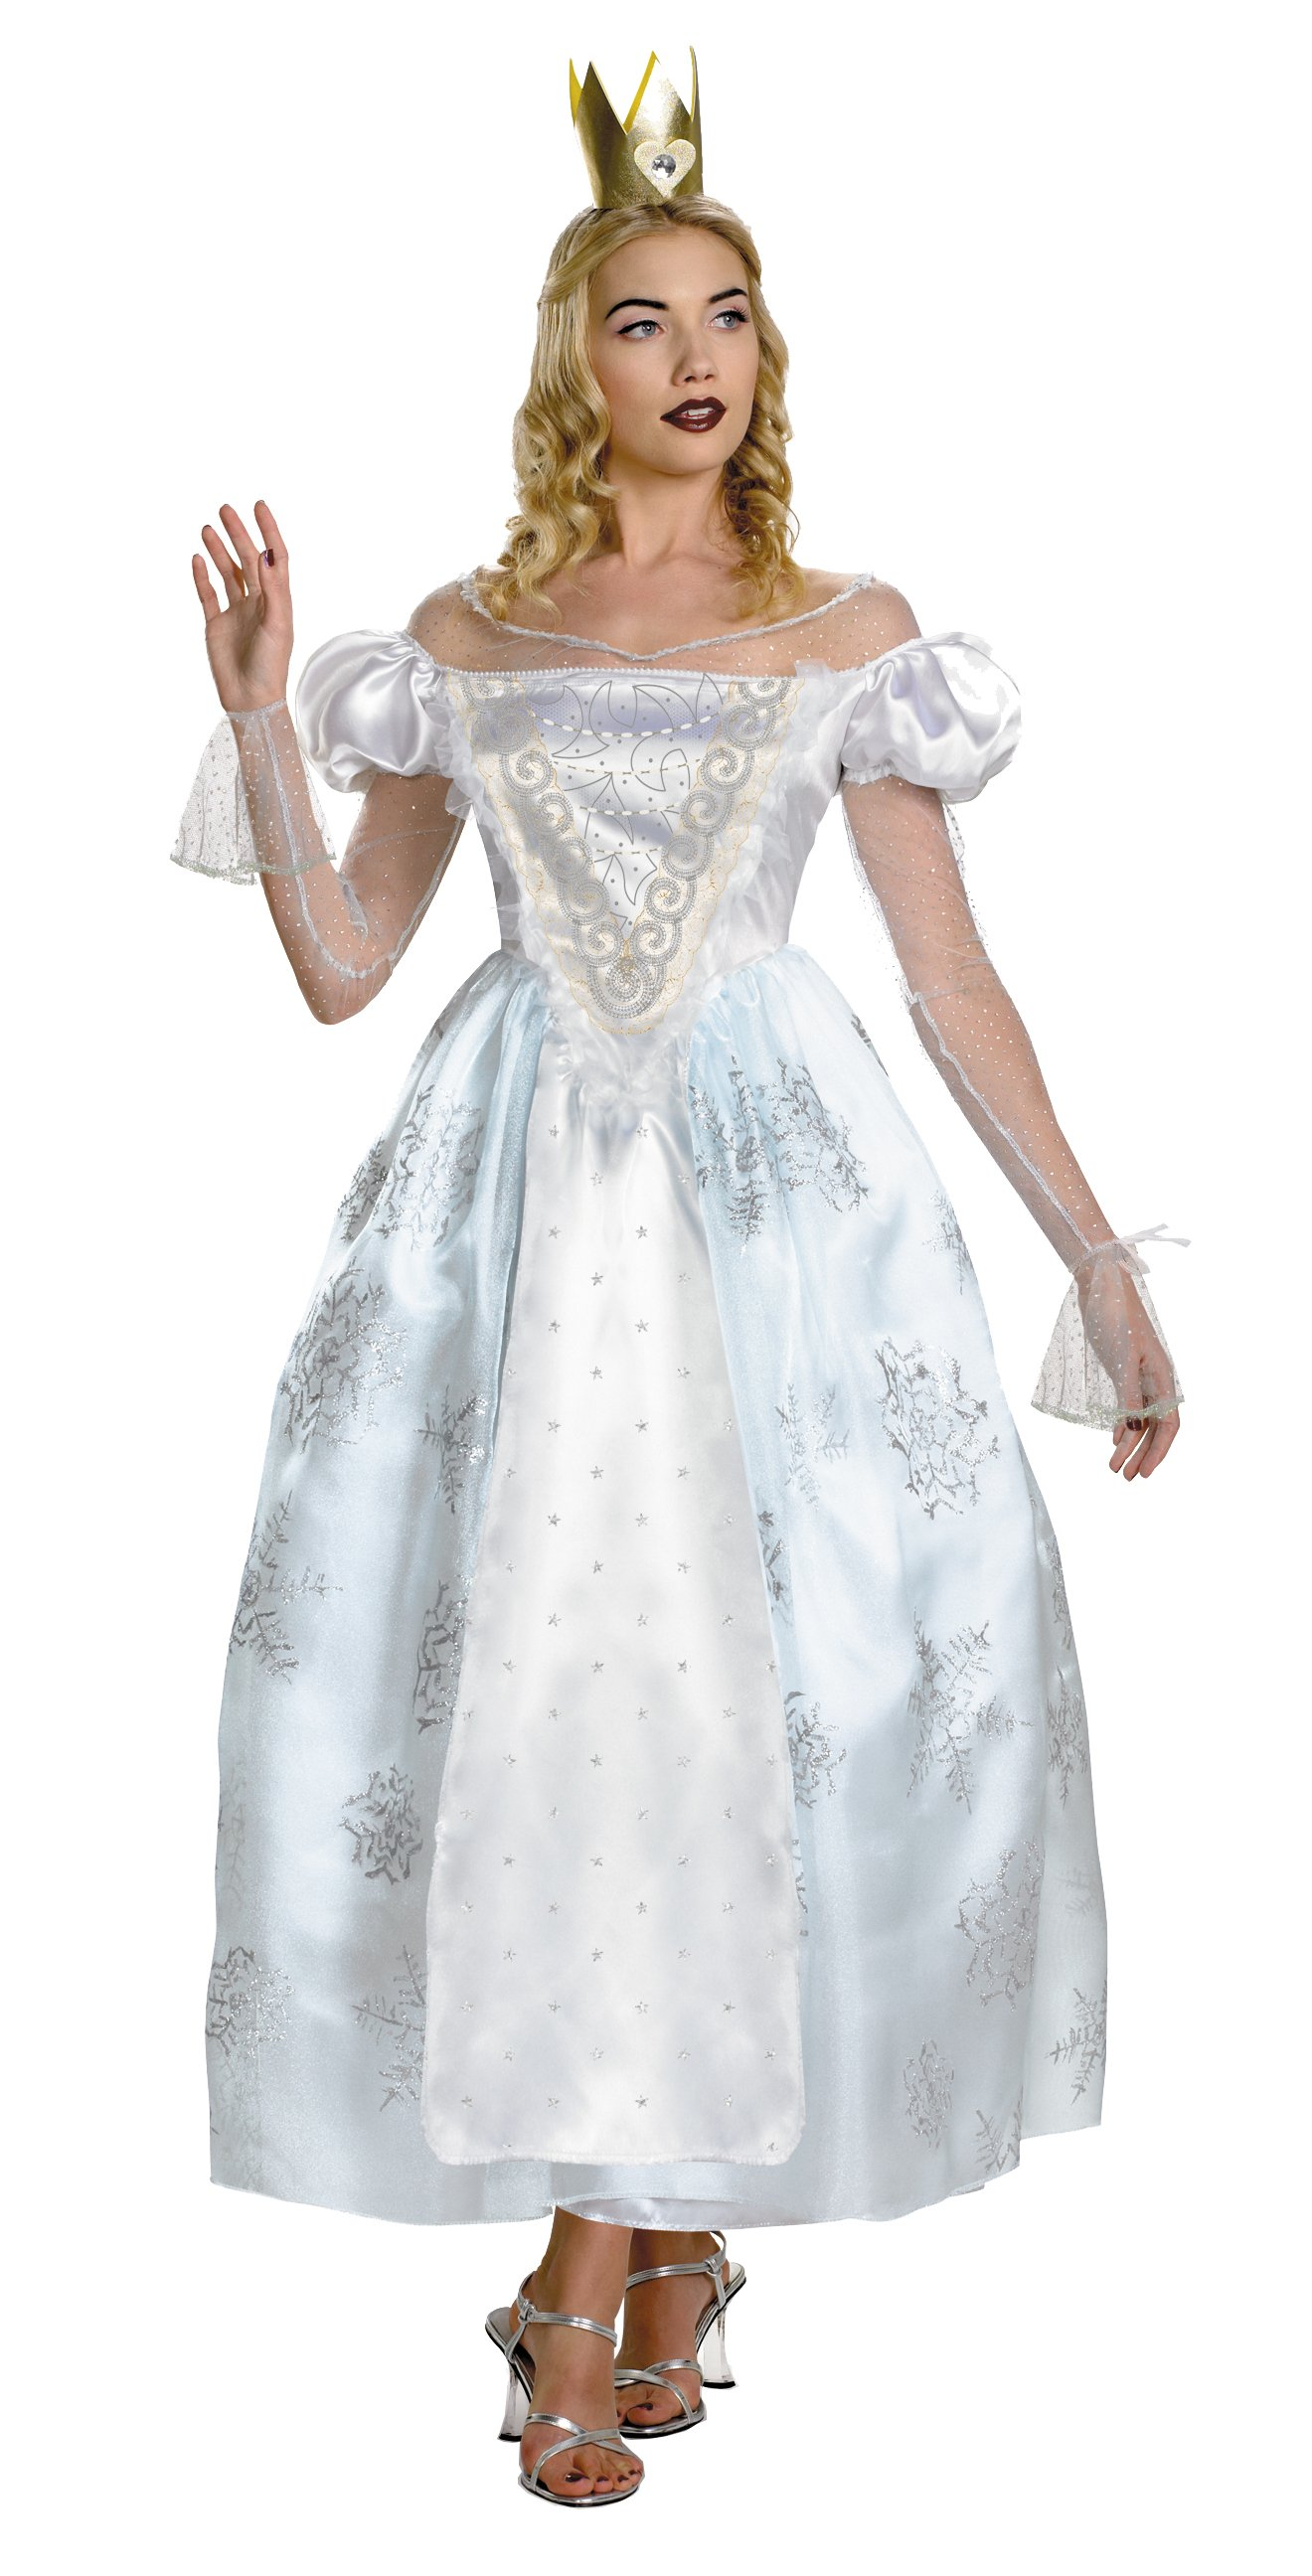 Alice In Wonderland - White Queen Deluxe Adult Costume